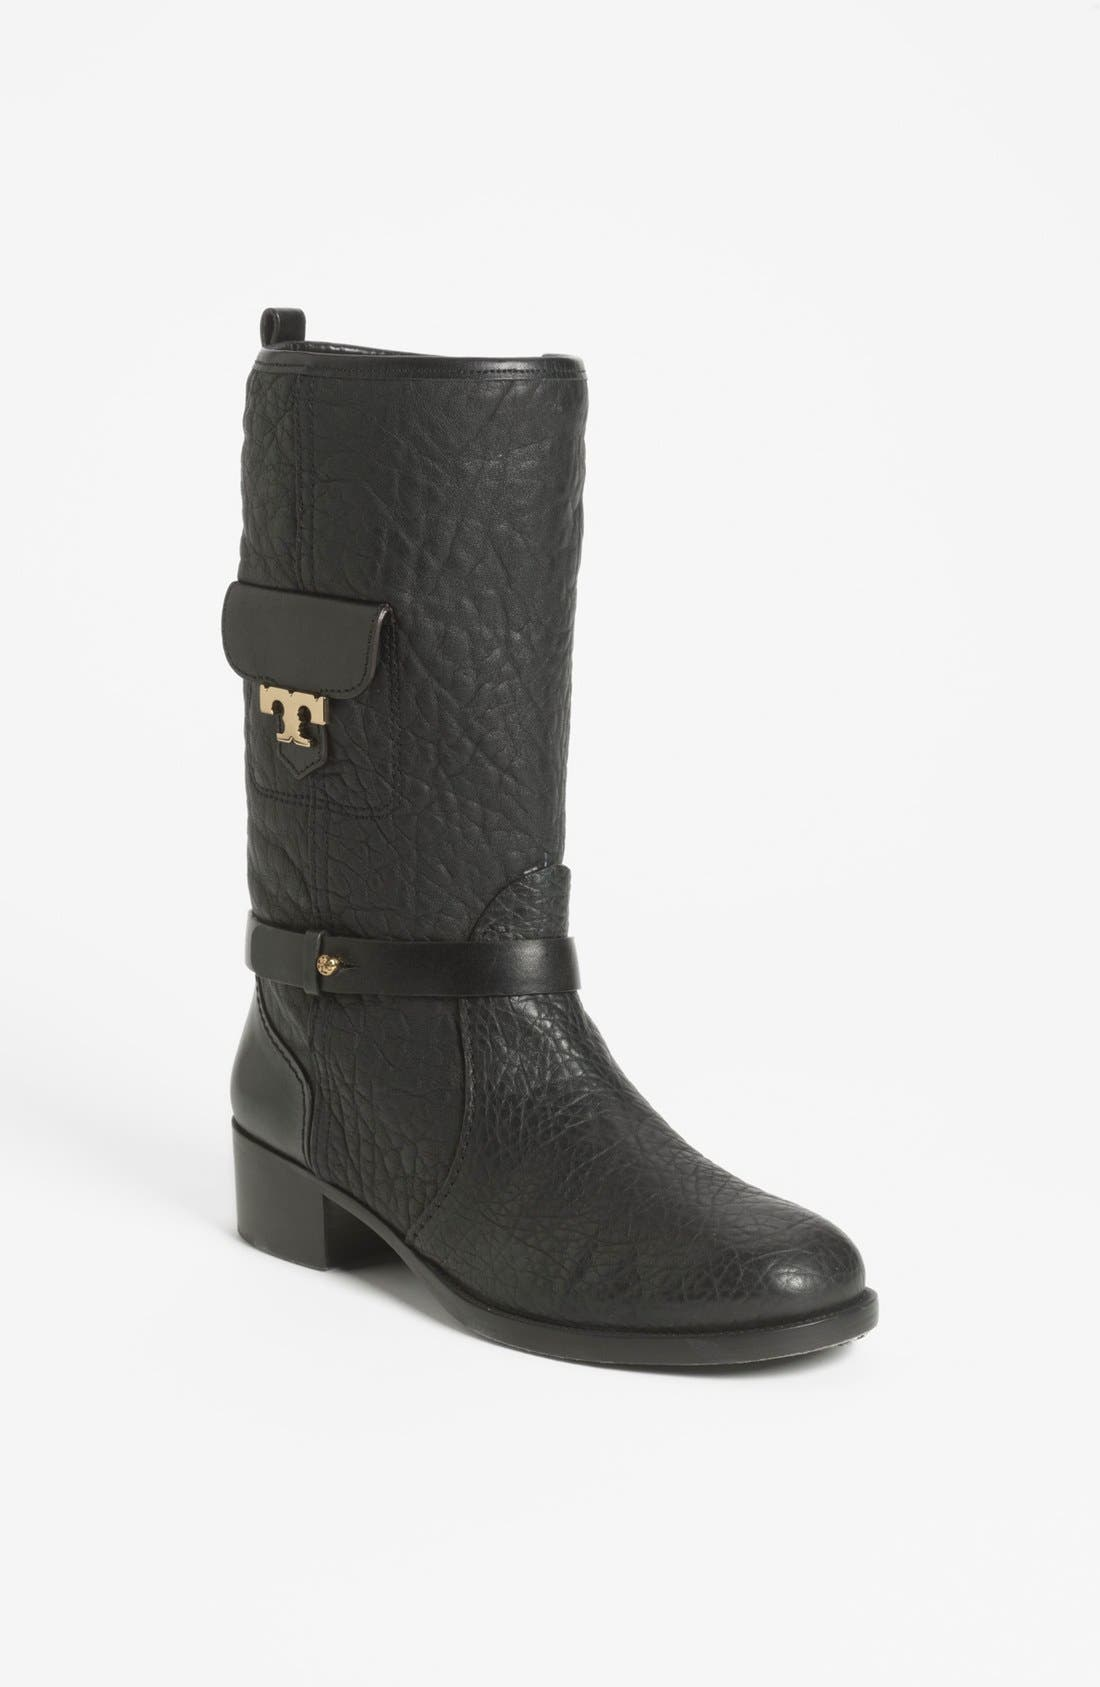 Alternate Image 1 Selected - Tory Burch 'Leona' Boot